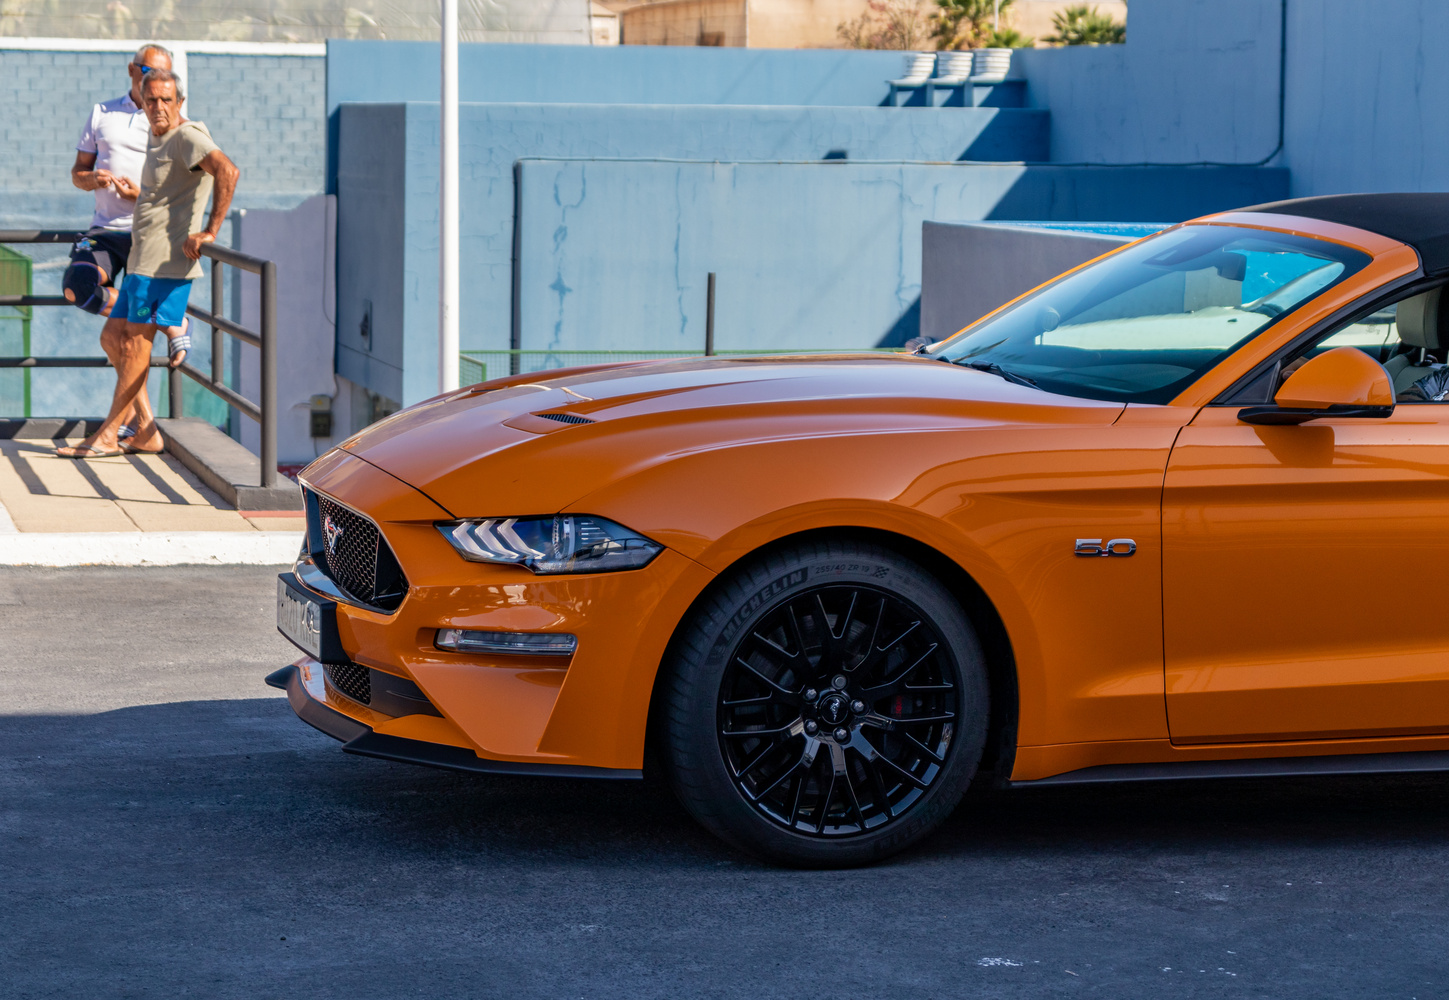 Mustang GT by Edson Afonso